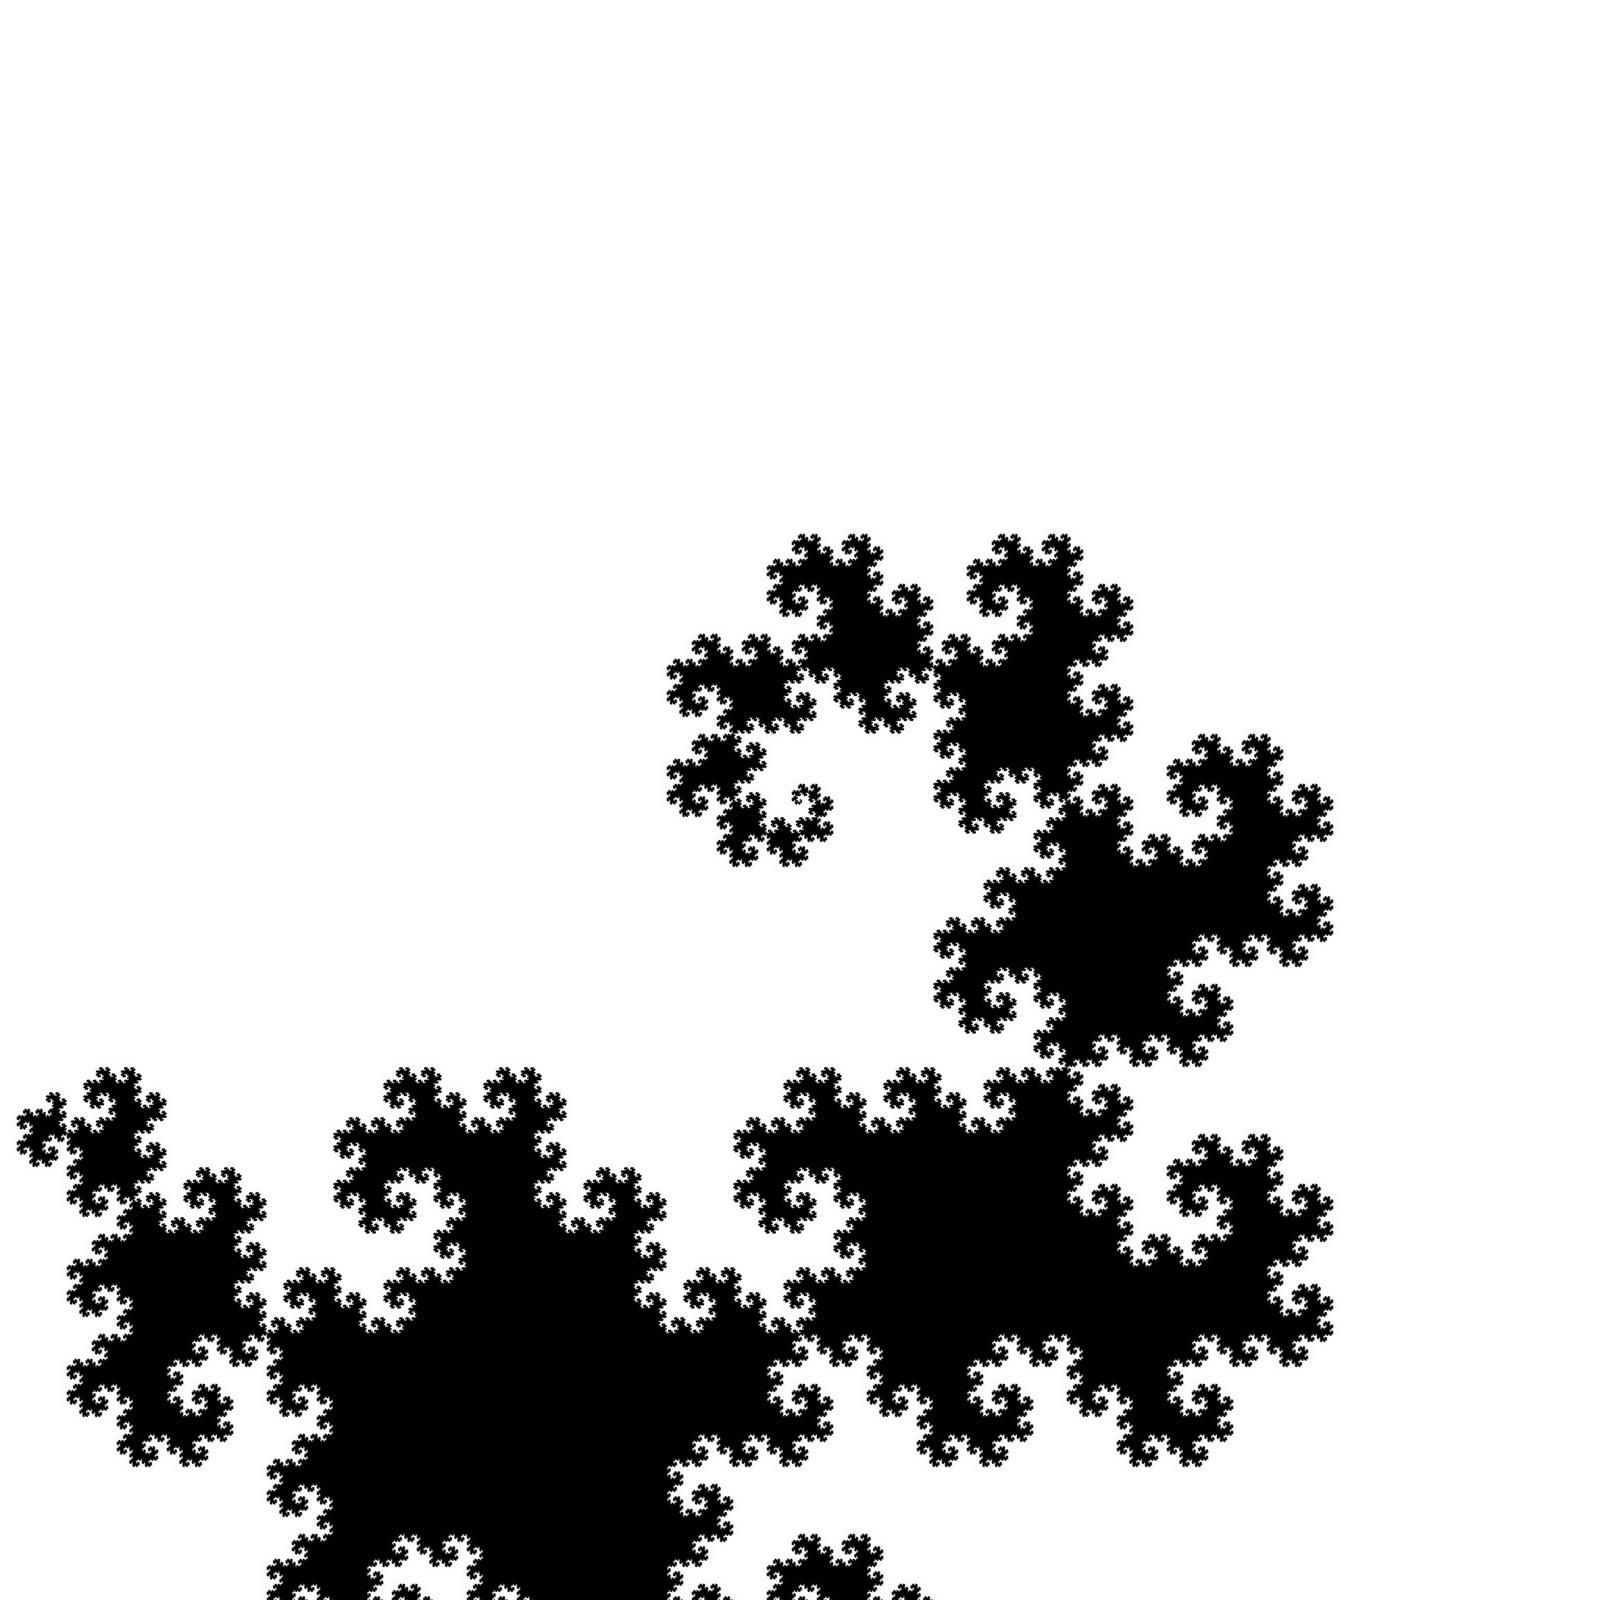 12GraphicDesign: Heighway Dragon Curve